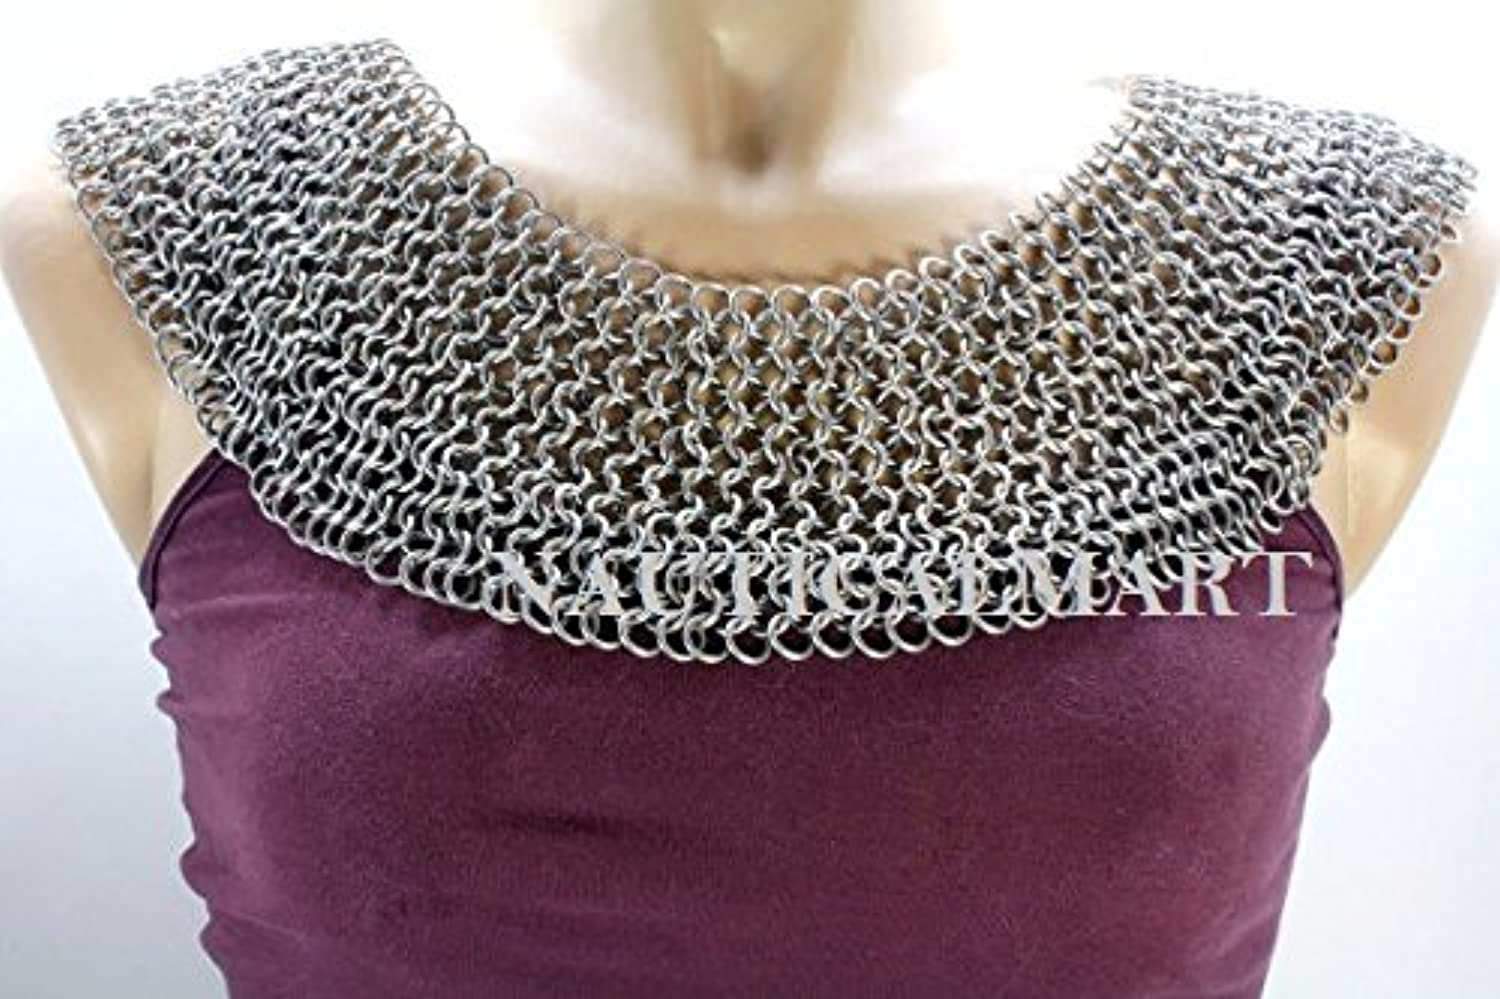 NAUTICALMART Chainmail Armor Bishop's Mantle Aluminum